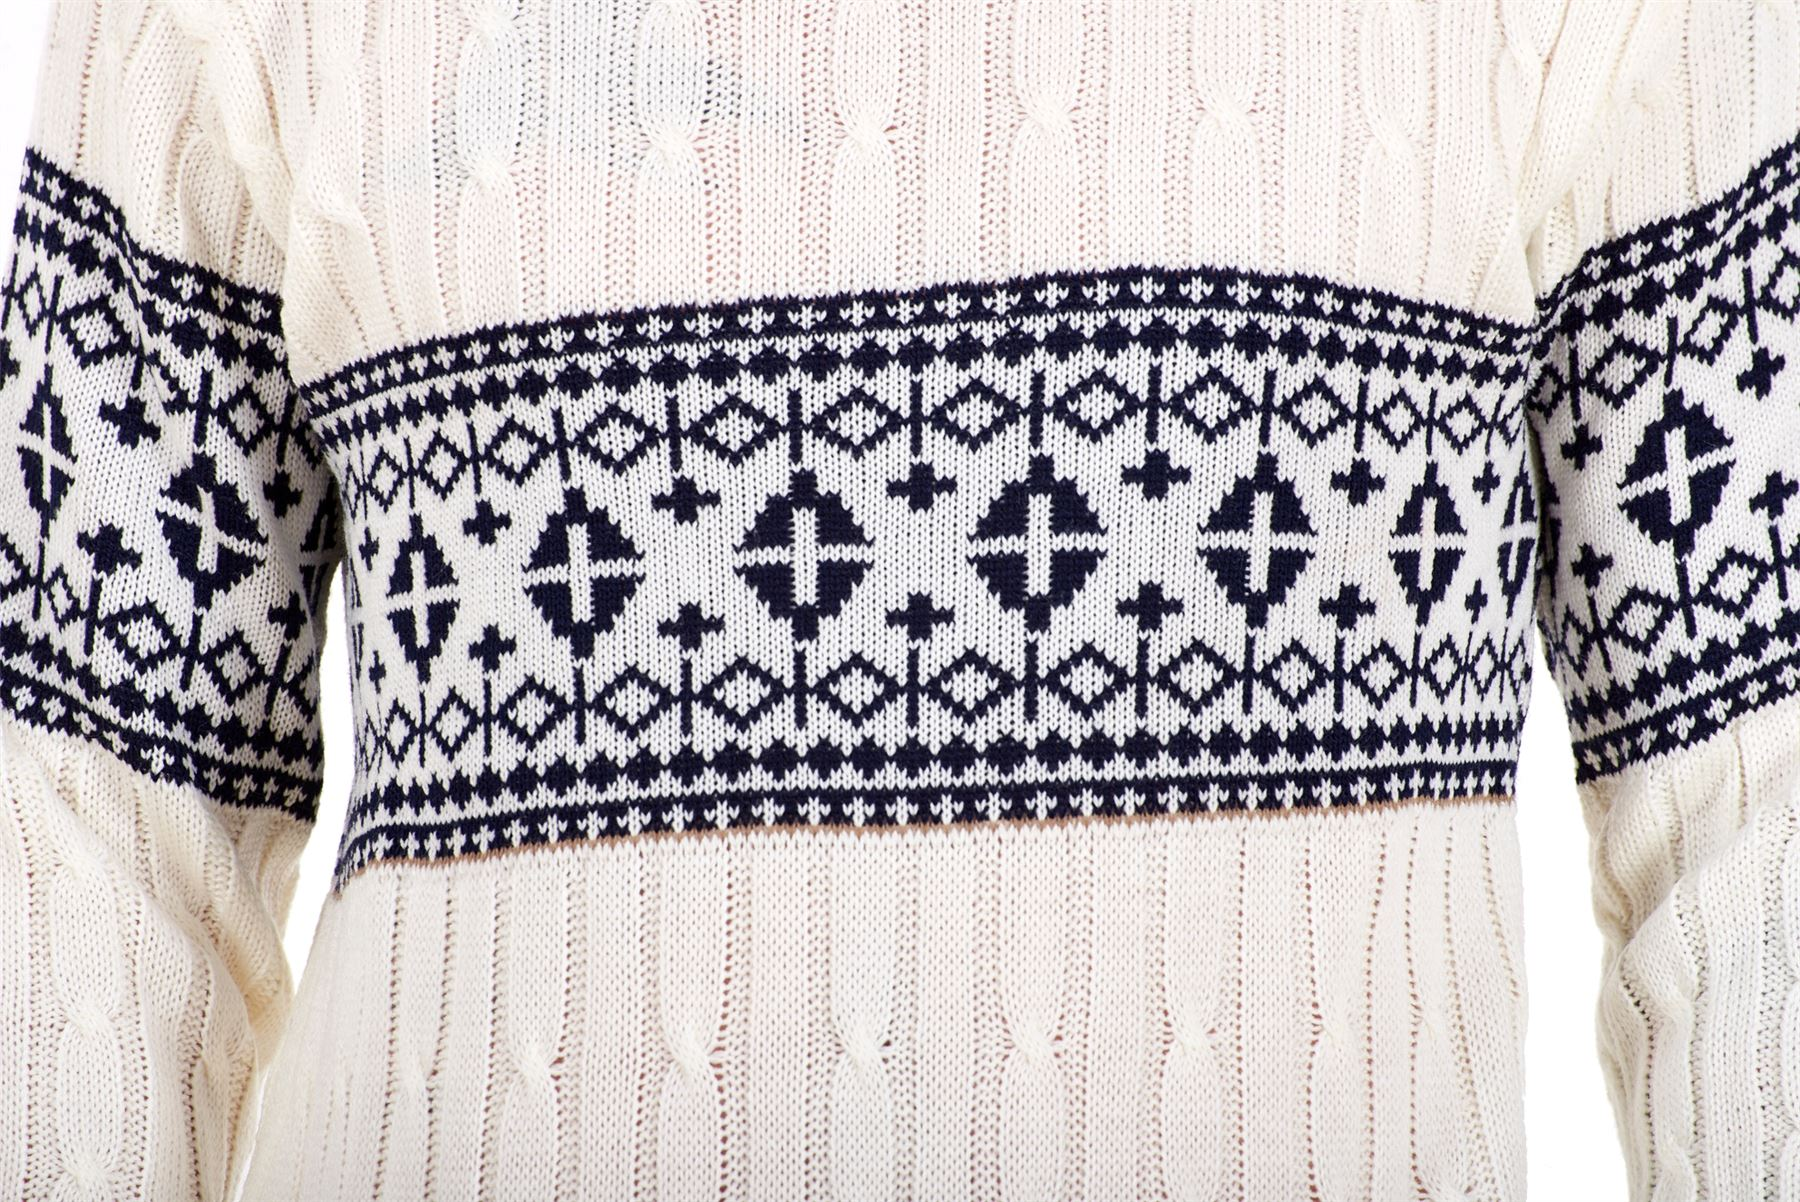 Mens-New-Cable-Knit-Jacquard-Long-Sleeve-Pullover-Jumper-Sweater-S-to-XL thumbnail 9